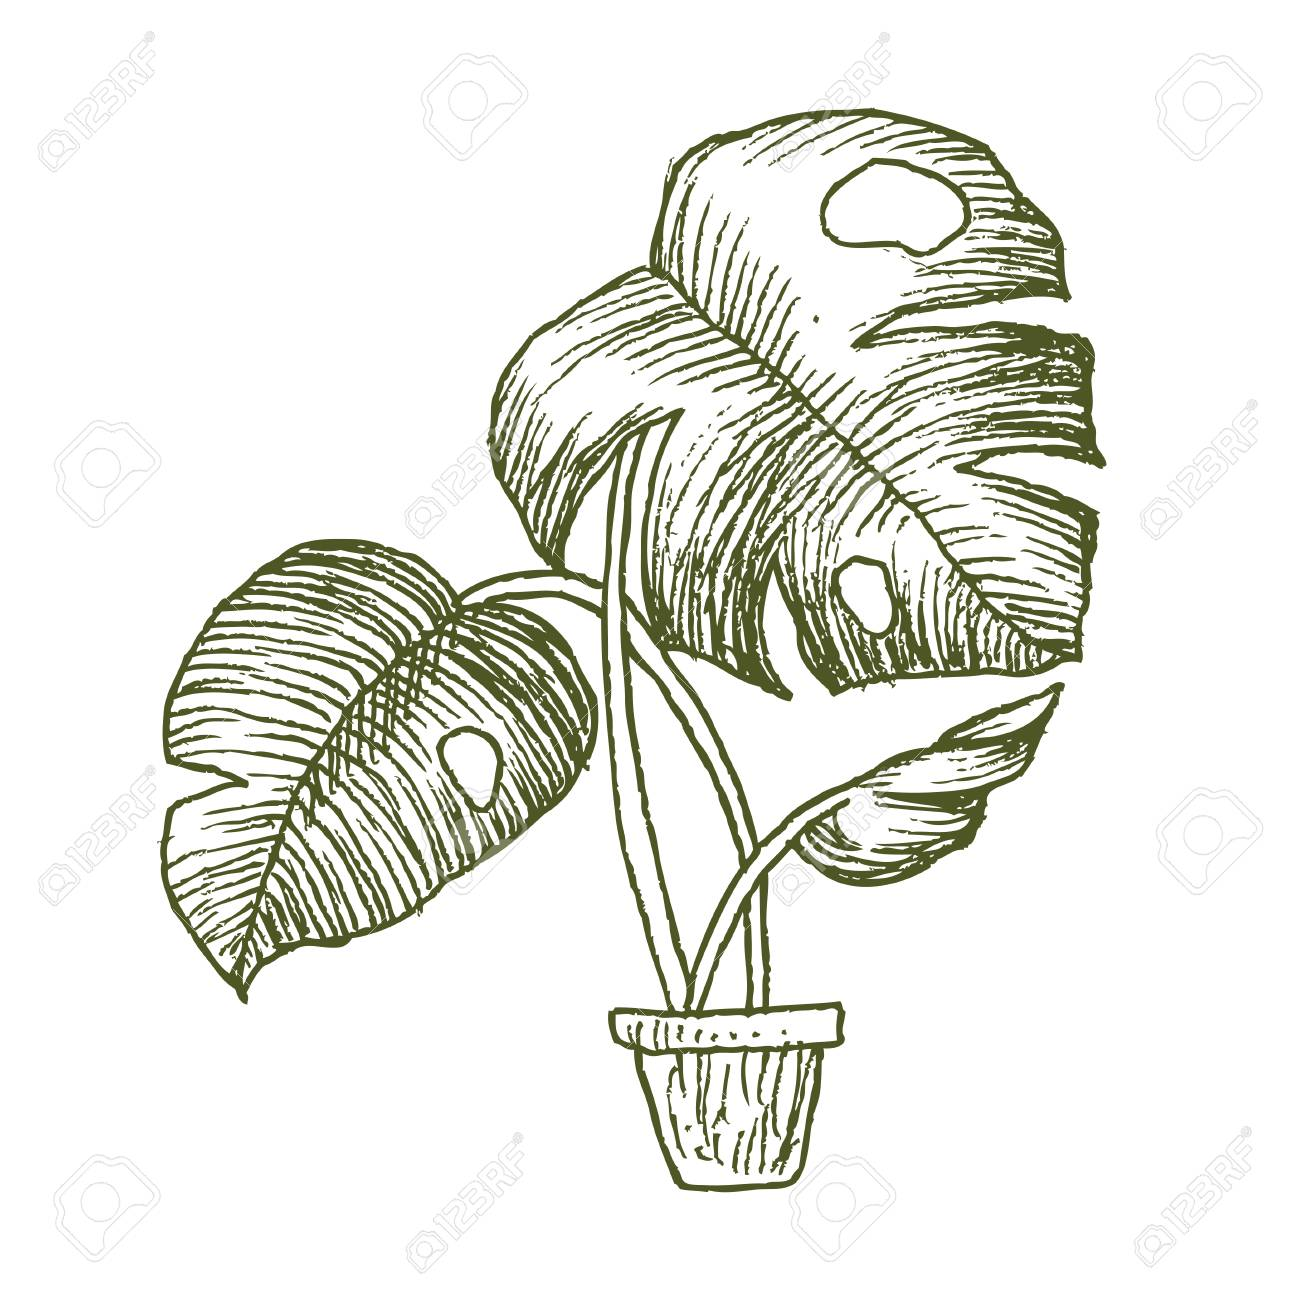 Illustration Of Houseplants Indoor And Office Plants In Pot Royalty Free Cliparts Vectors And Stock Illustration Image 99983472